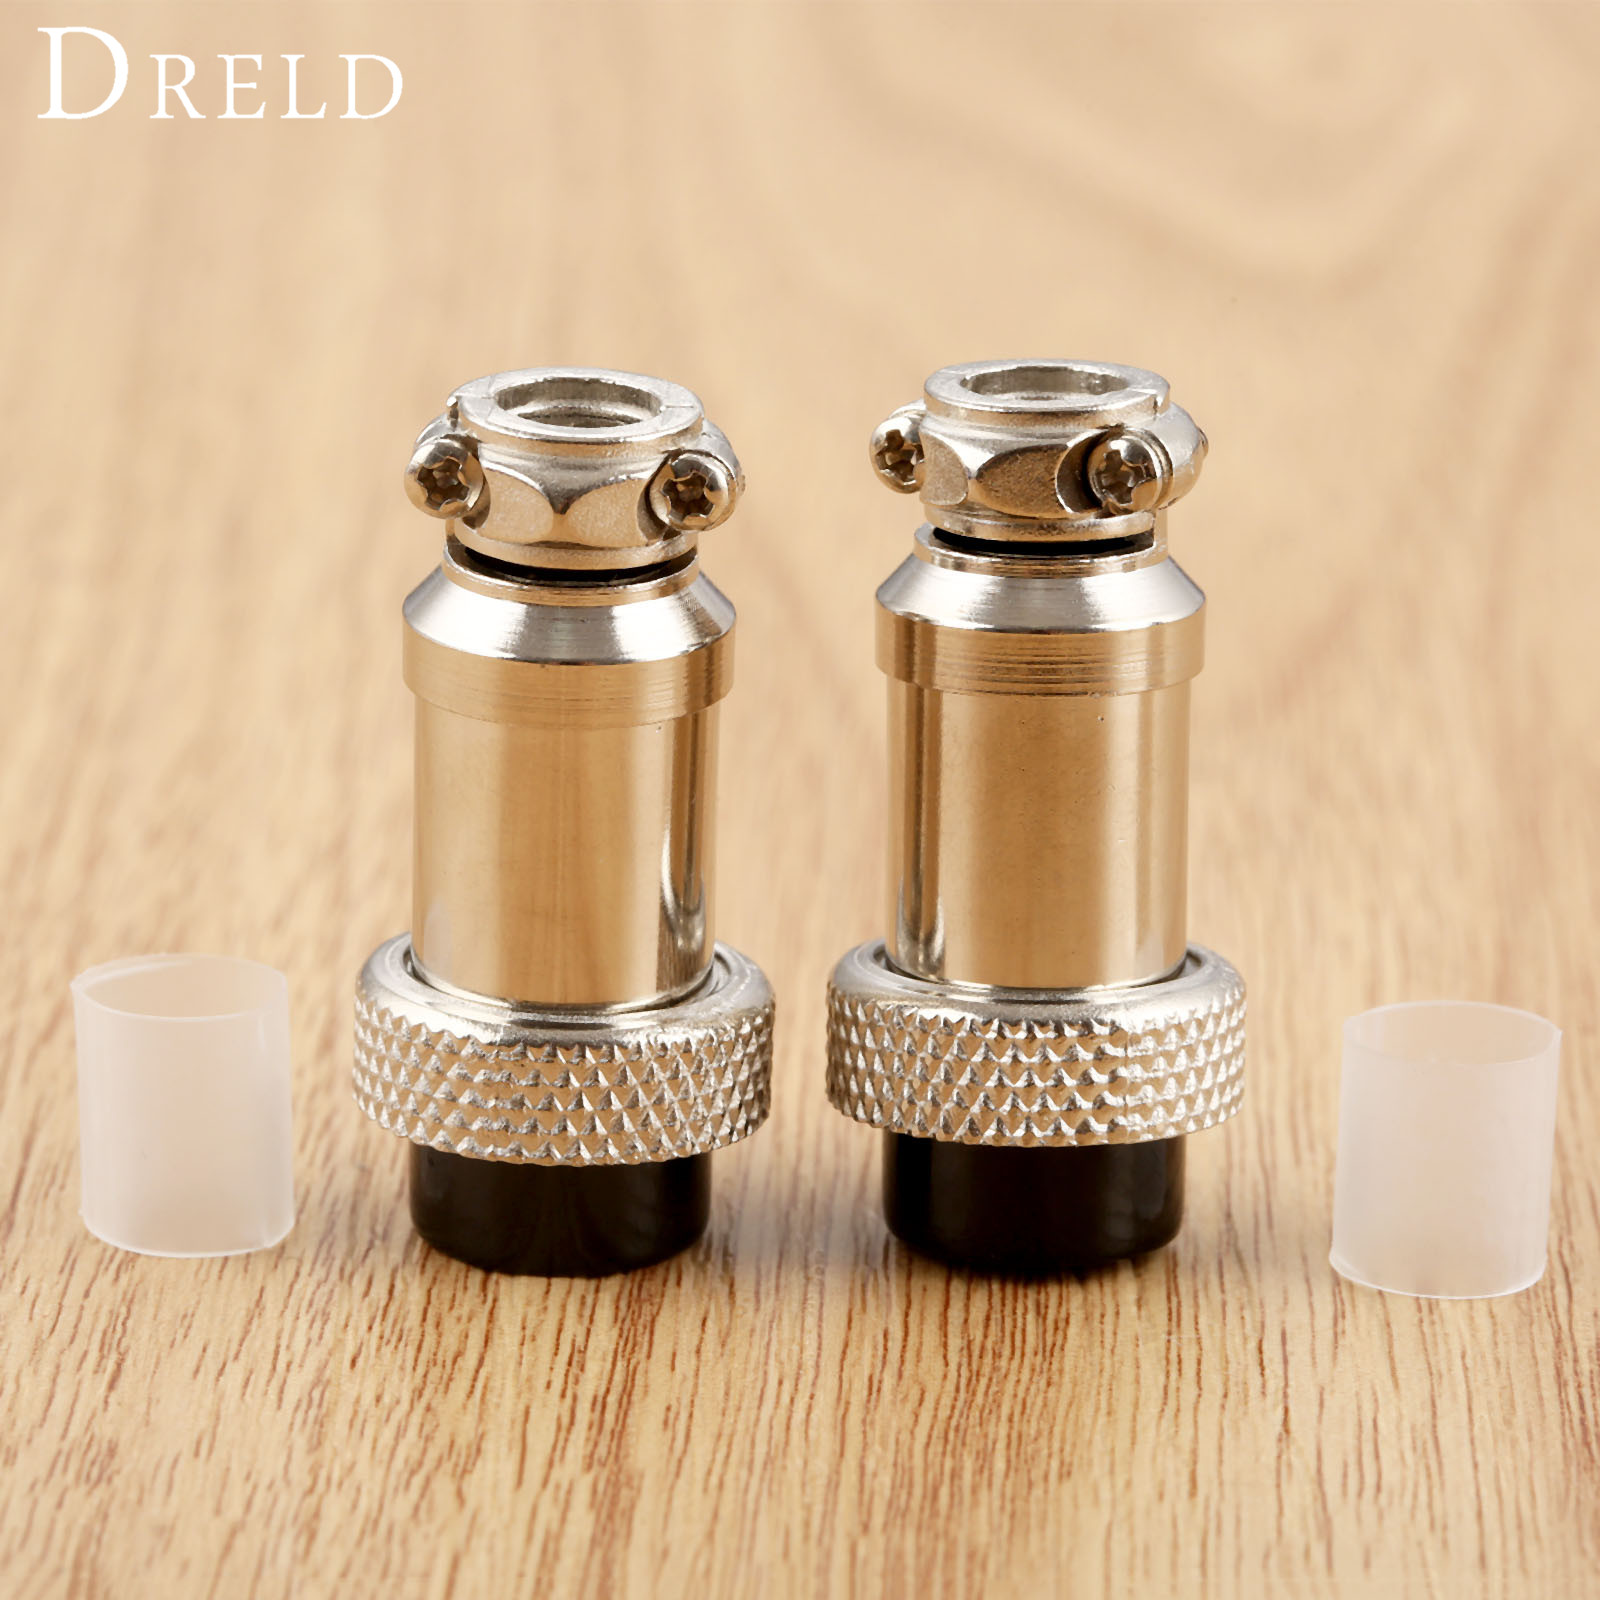 DRELD 2pcs 2 Pin Aviation Plug Air Connector 16-2P Female Socket For TIG Torch And Plasma Torch 2PK Welding & Soldering Supplies